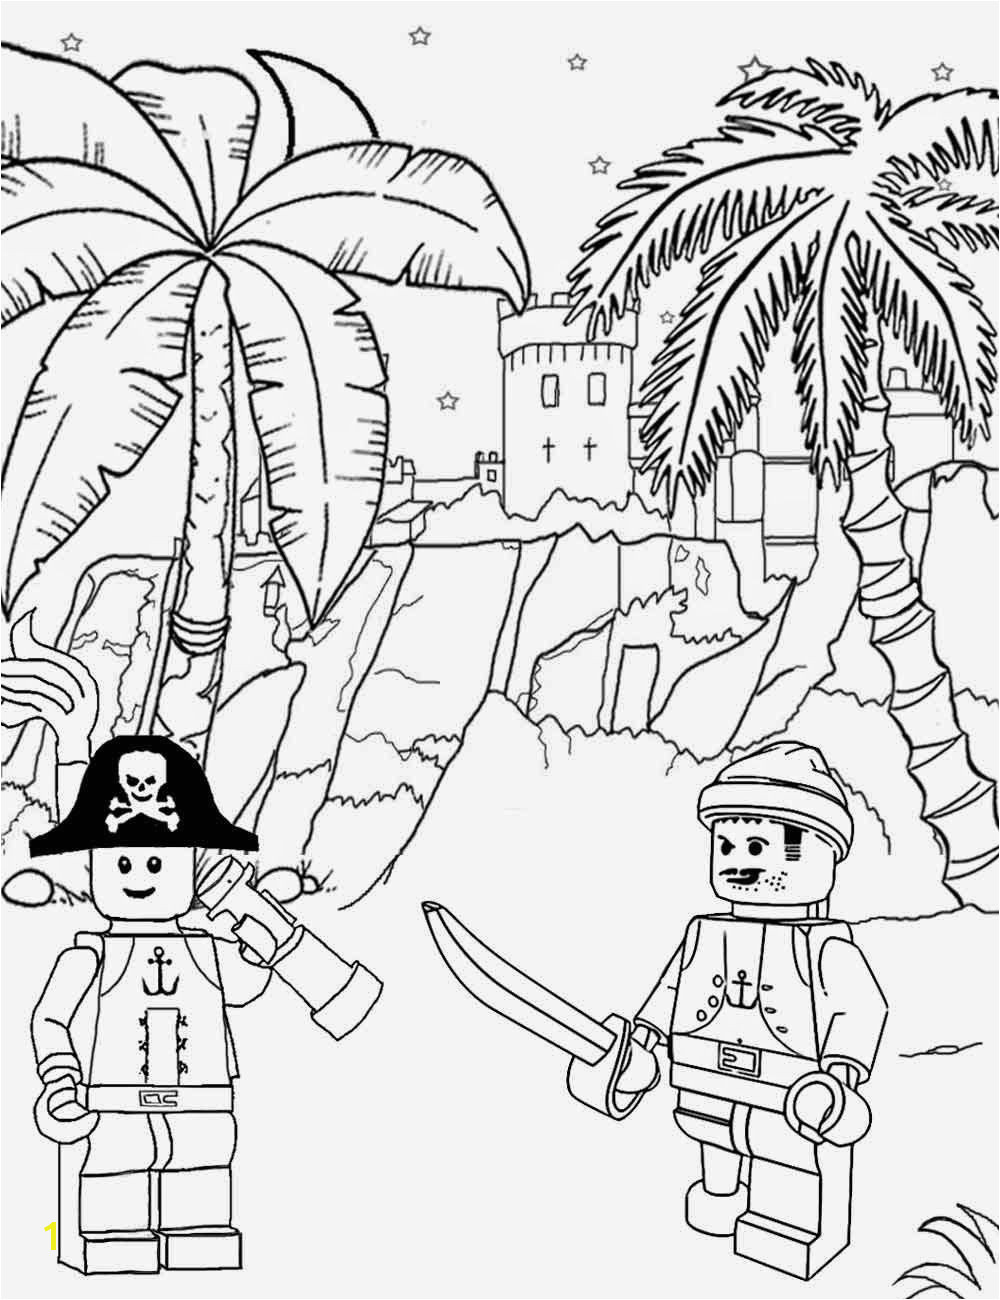 Lots of kinds of coloring pages lego etc Long John Silver sea pirate castle Lego sailor Treasure Island printable Lego city coloring sheets